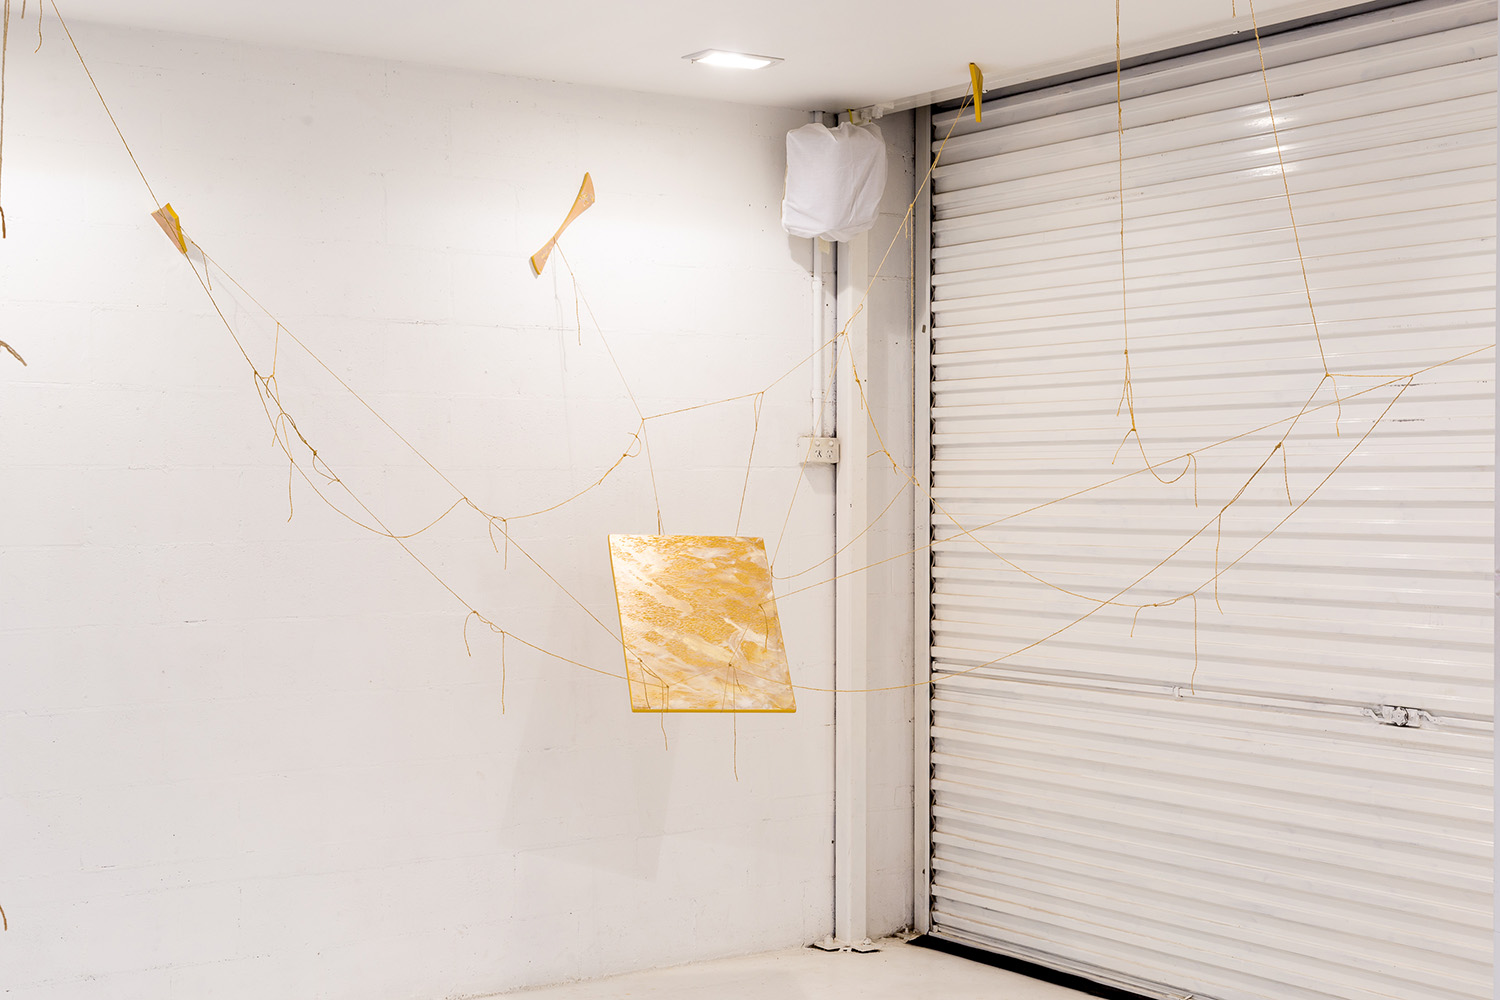 Le repos et la Lumière , 2019,  Le repos et la Lumière , 2019, acrylic on engraved Silky Oak ply, 60x44cm; support, acrylic plywood and twine, dimensions variable. (acquired)  Image: André Piguet